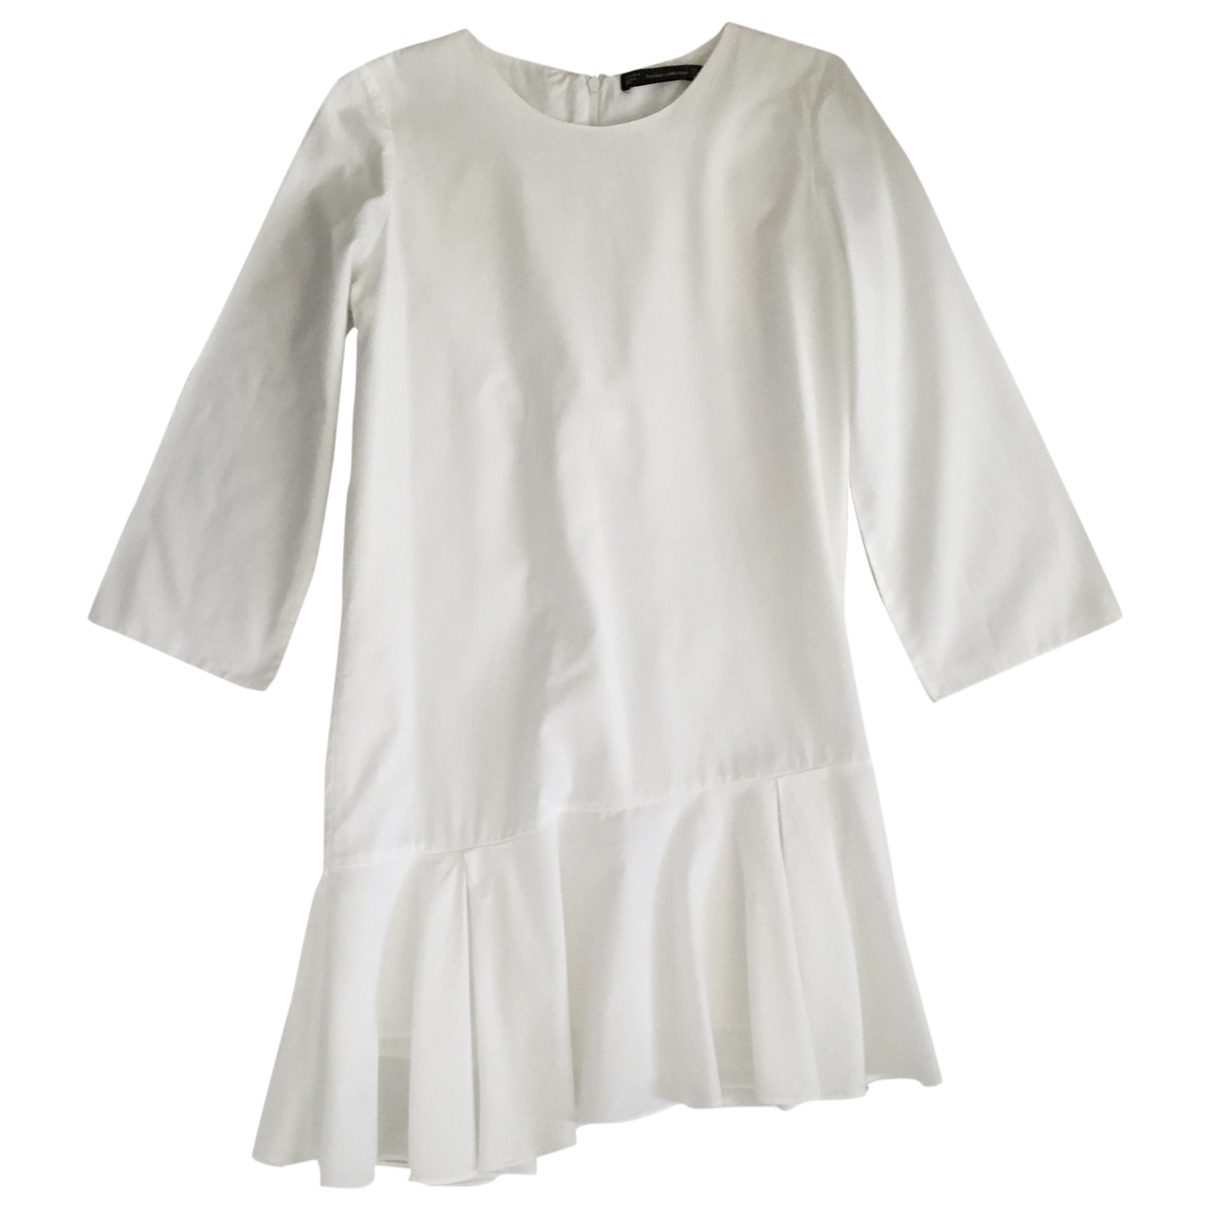 Zara \N White Cotton dress for Women M International